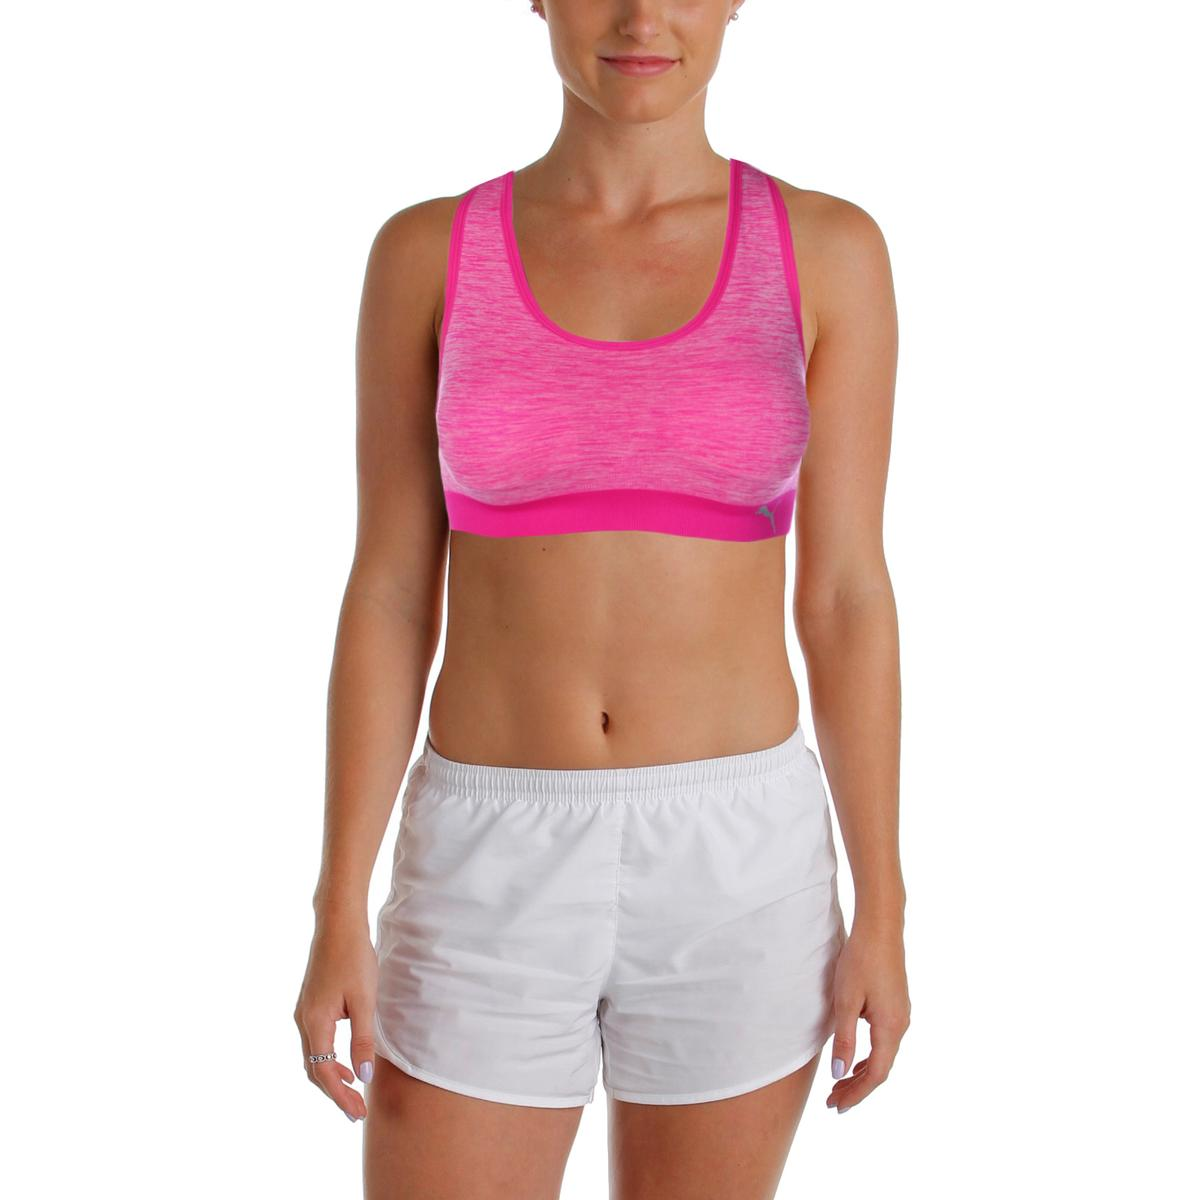 Puma Womens Free Run Seamless Lightly Padded Sports Bra 12dfd74b398f